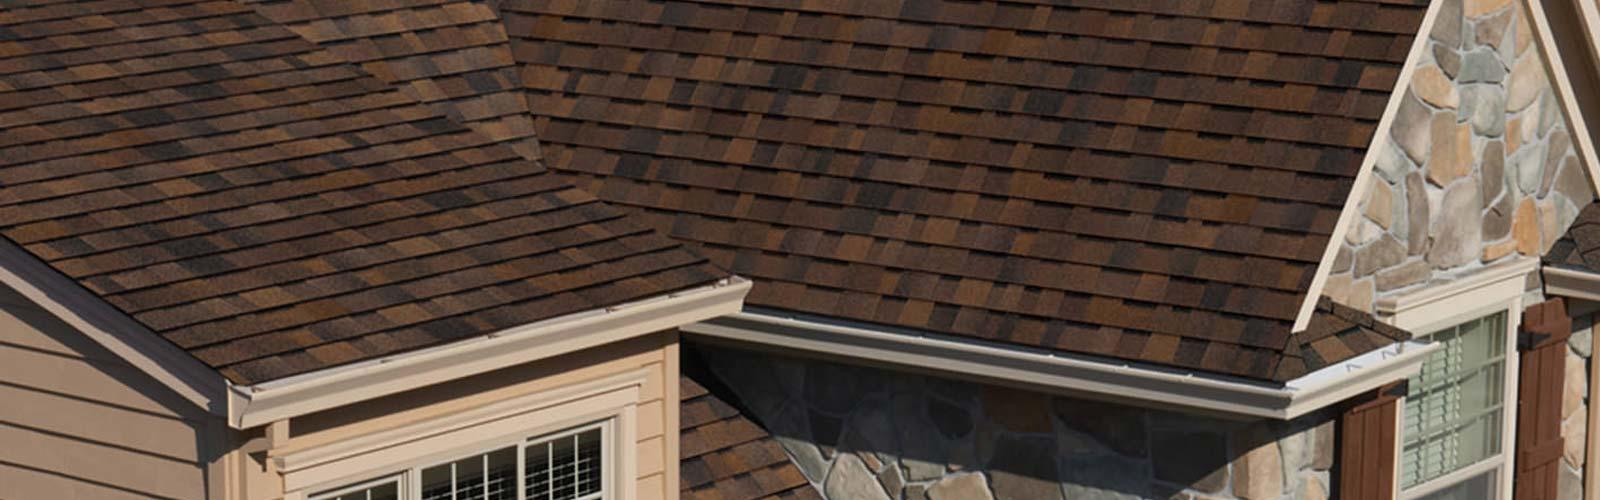 Brothers Roofing Images